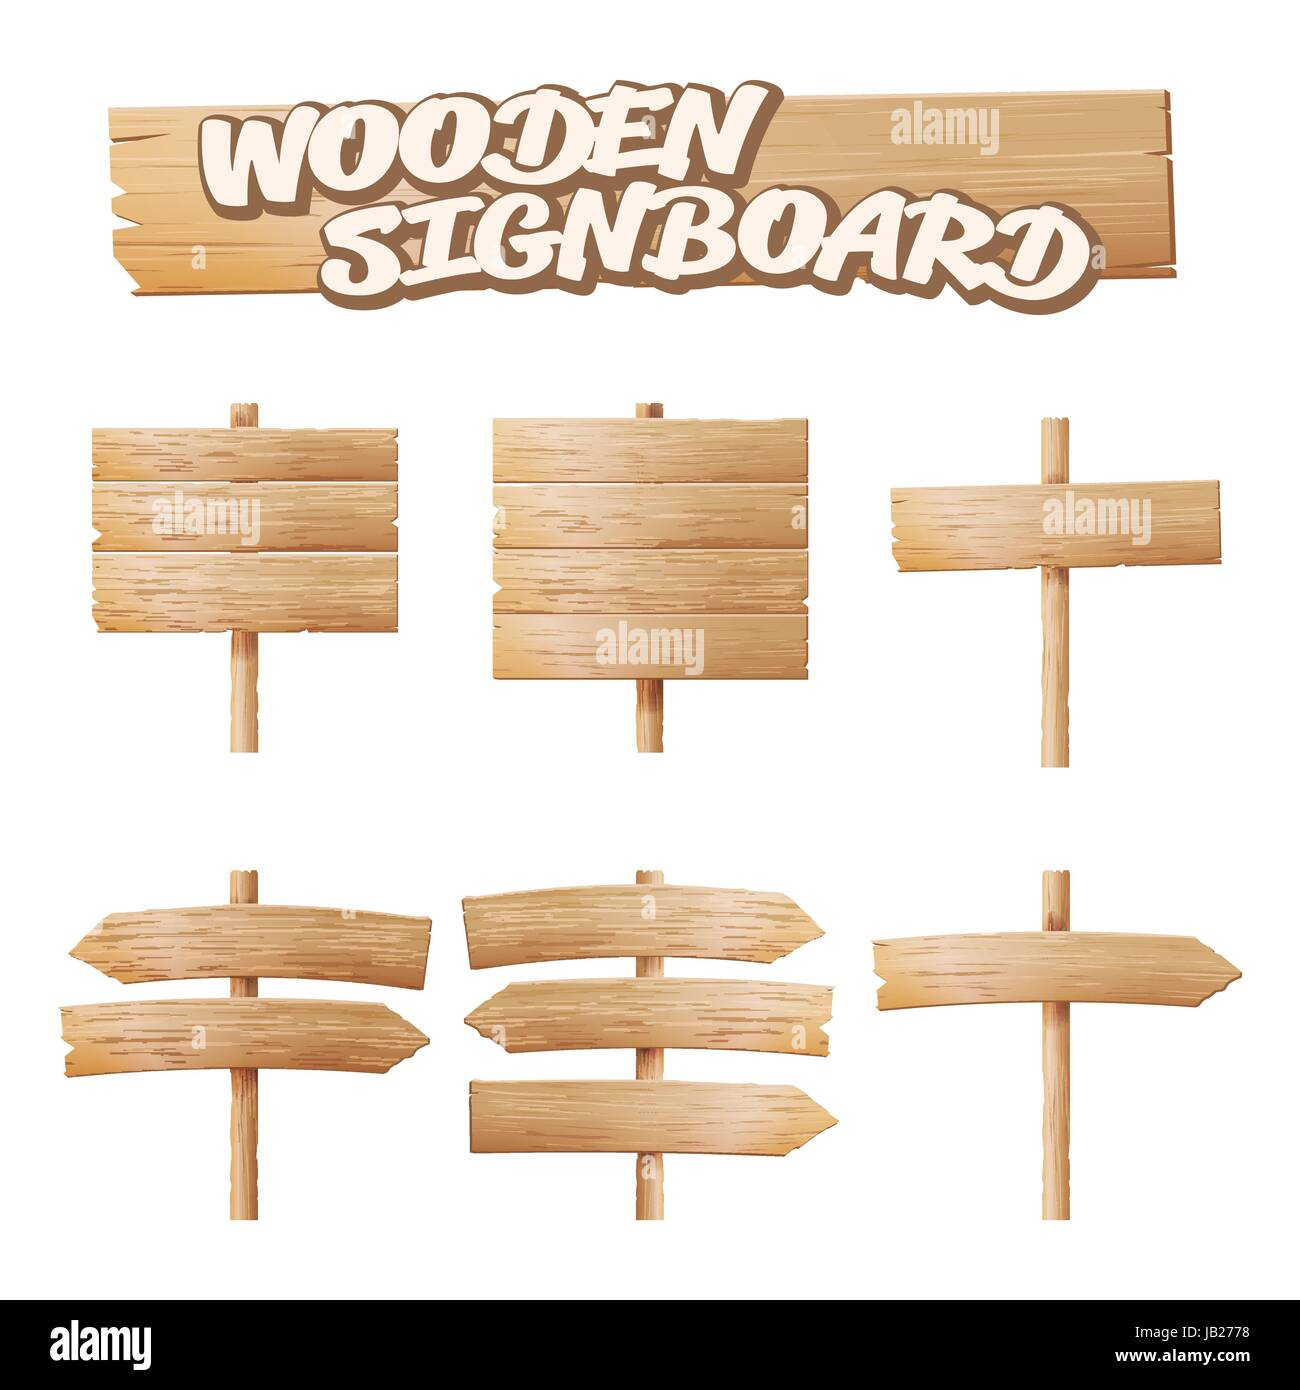 Wooden Signboards Set Vector. Empty Cartoon Banner. Arrow, Plank With Cracks. Wood Elements. Space For Text - Stock Vector